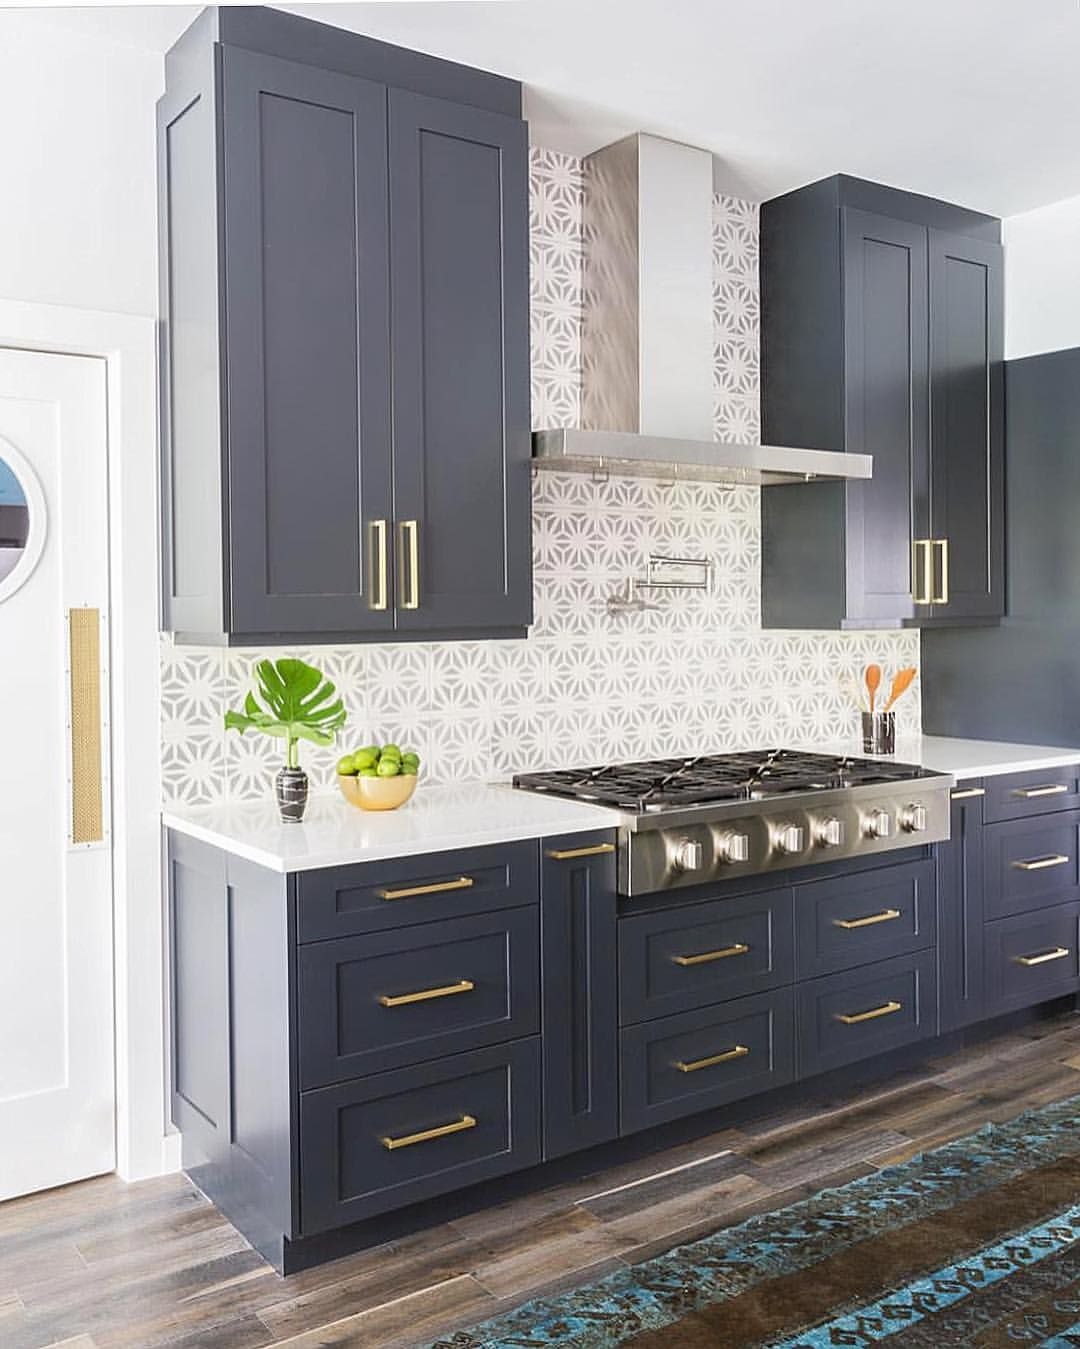 Benjamin Moore Wolf Gray a blue-grey painted kitchen cabinets with ...